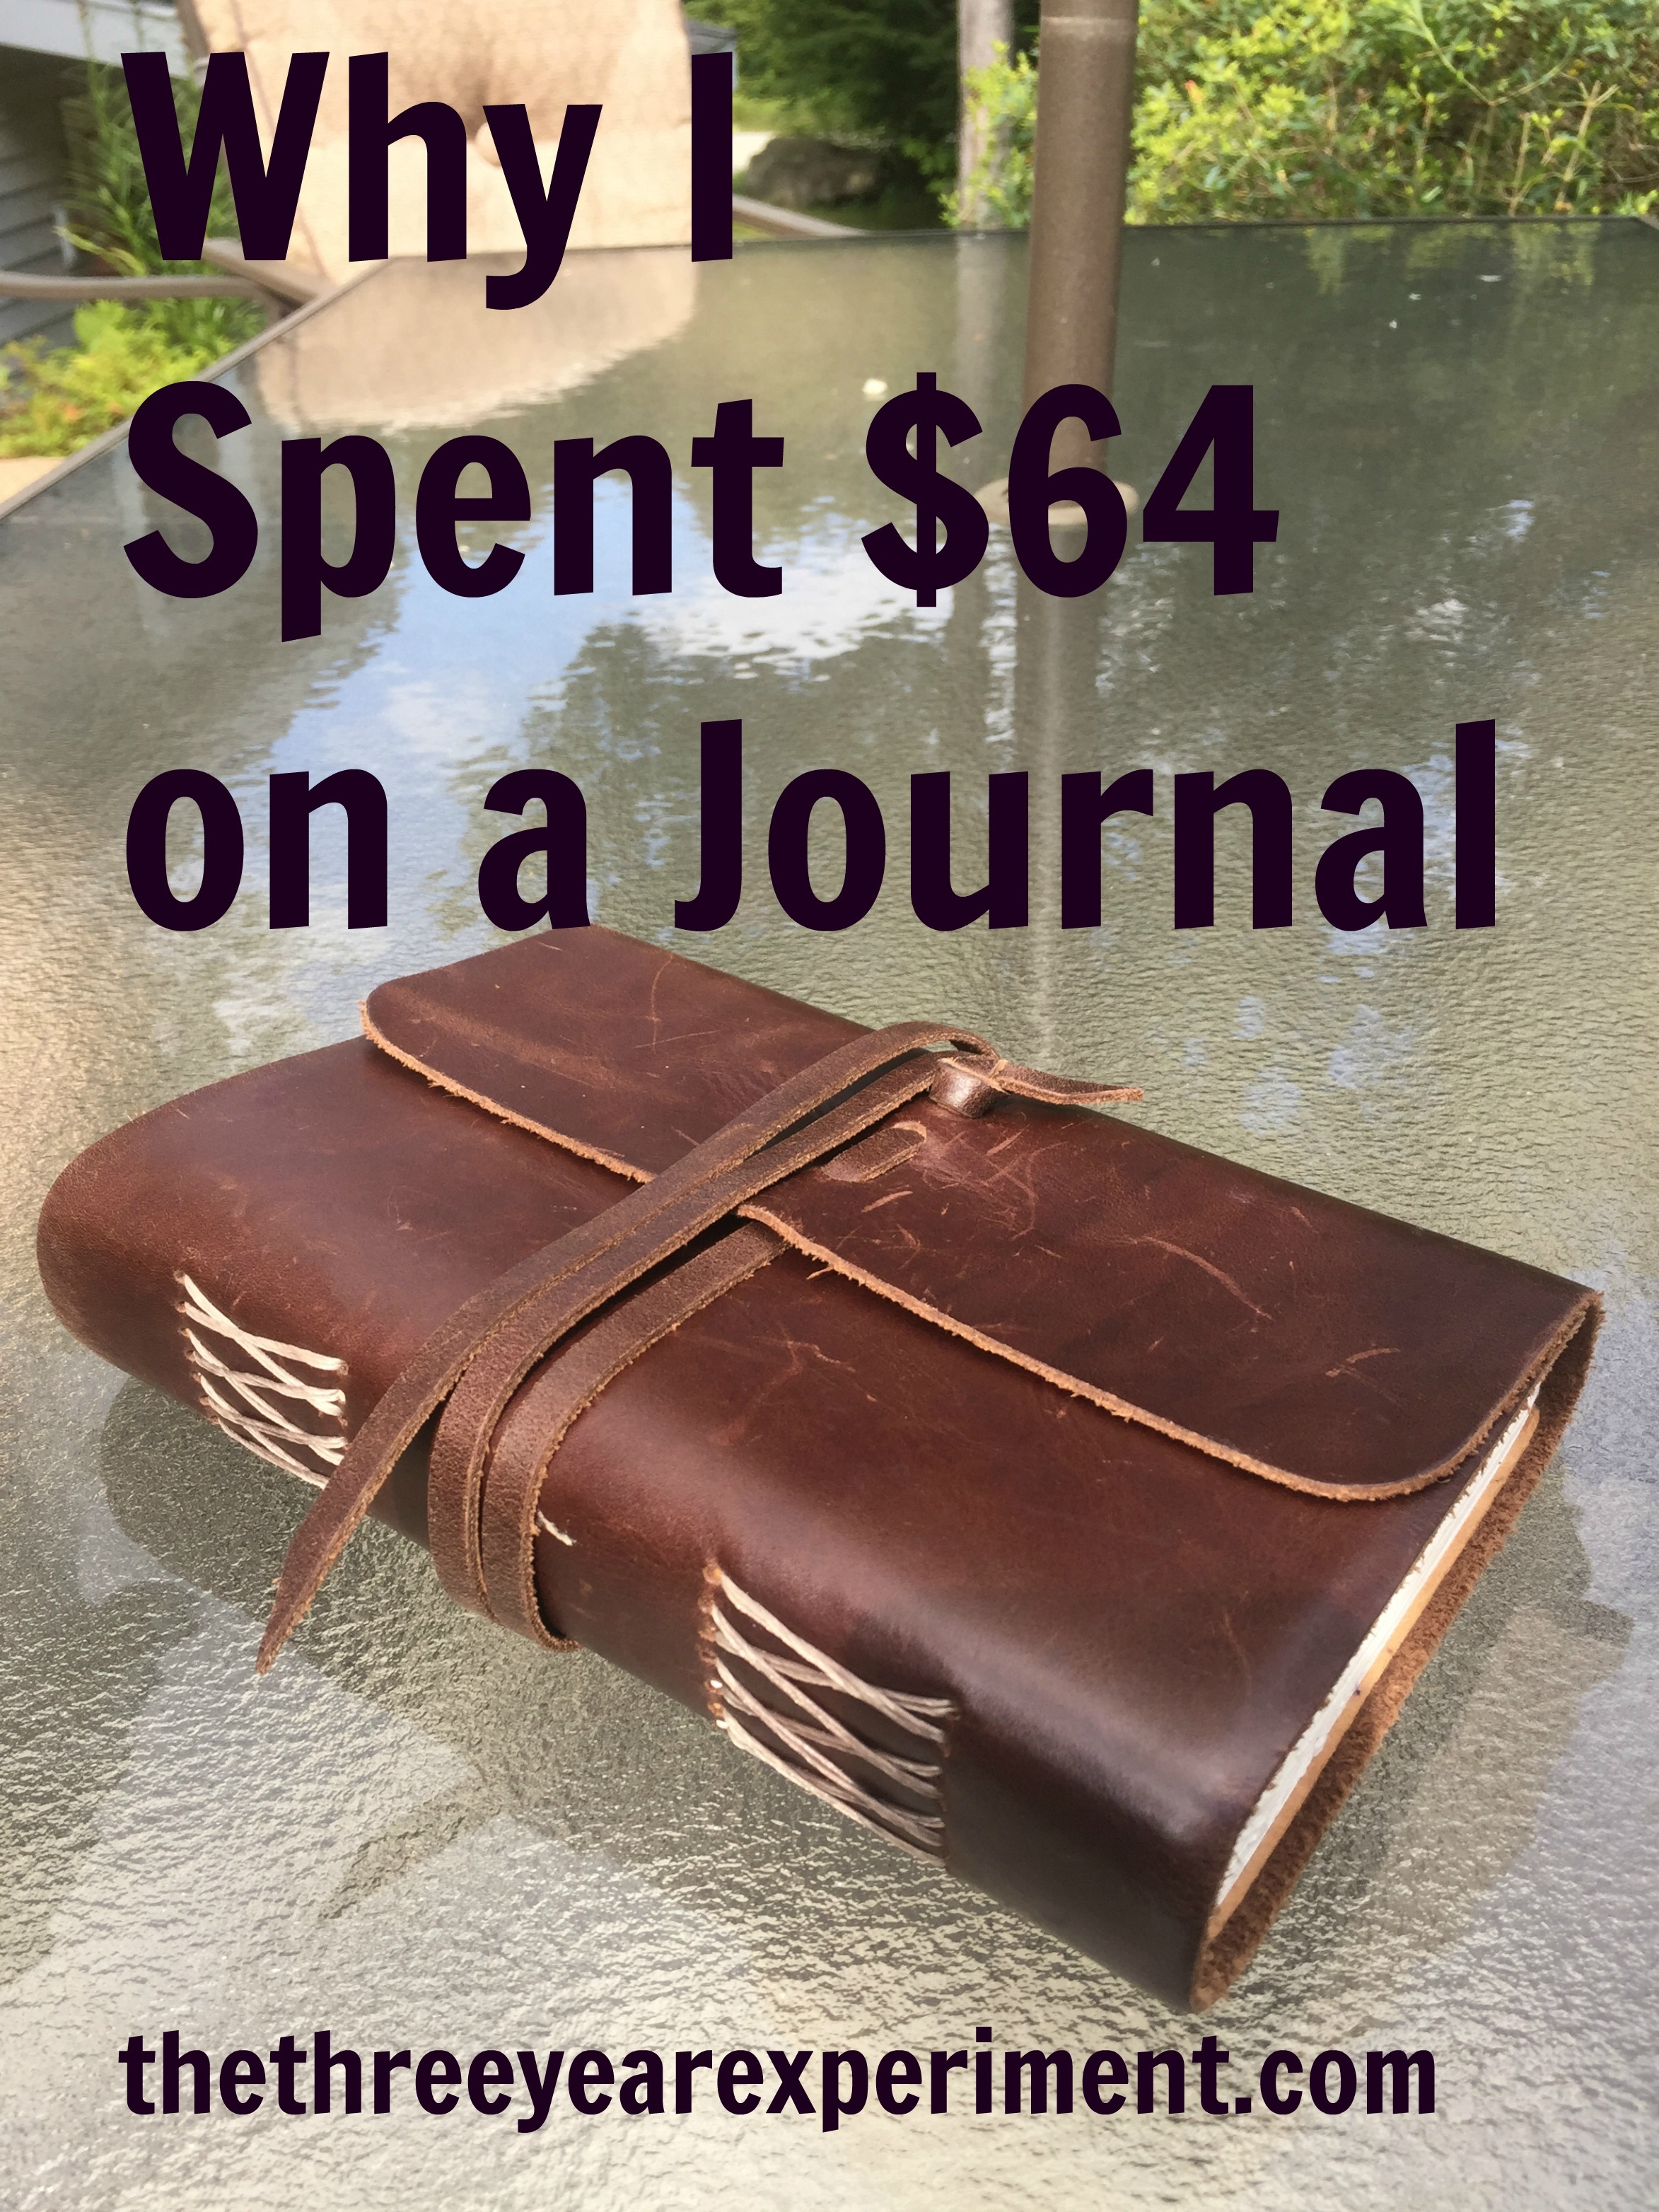 Why I Spent $64 on a Journal--www.thethreeyearexperiment.com